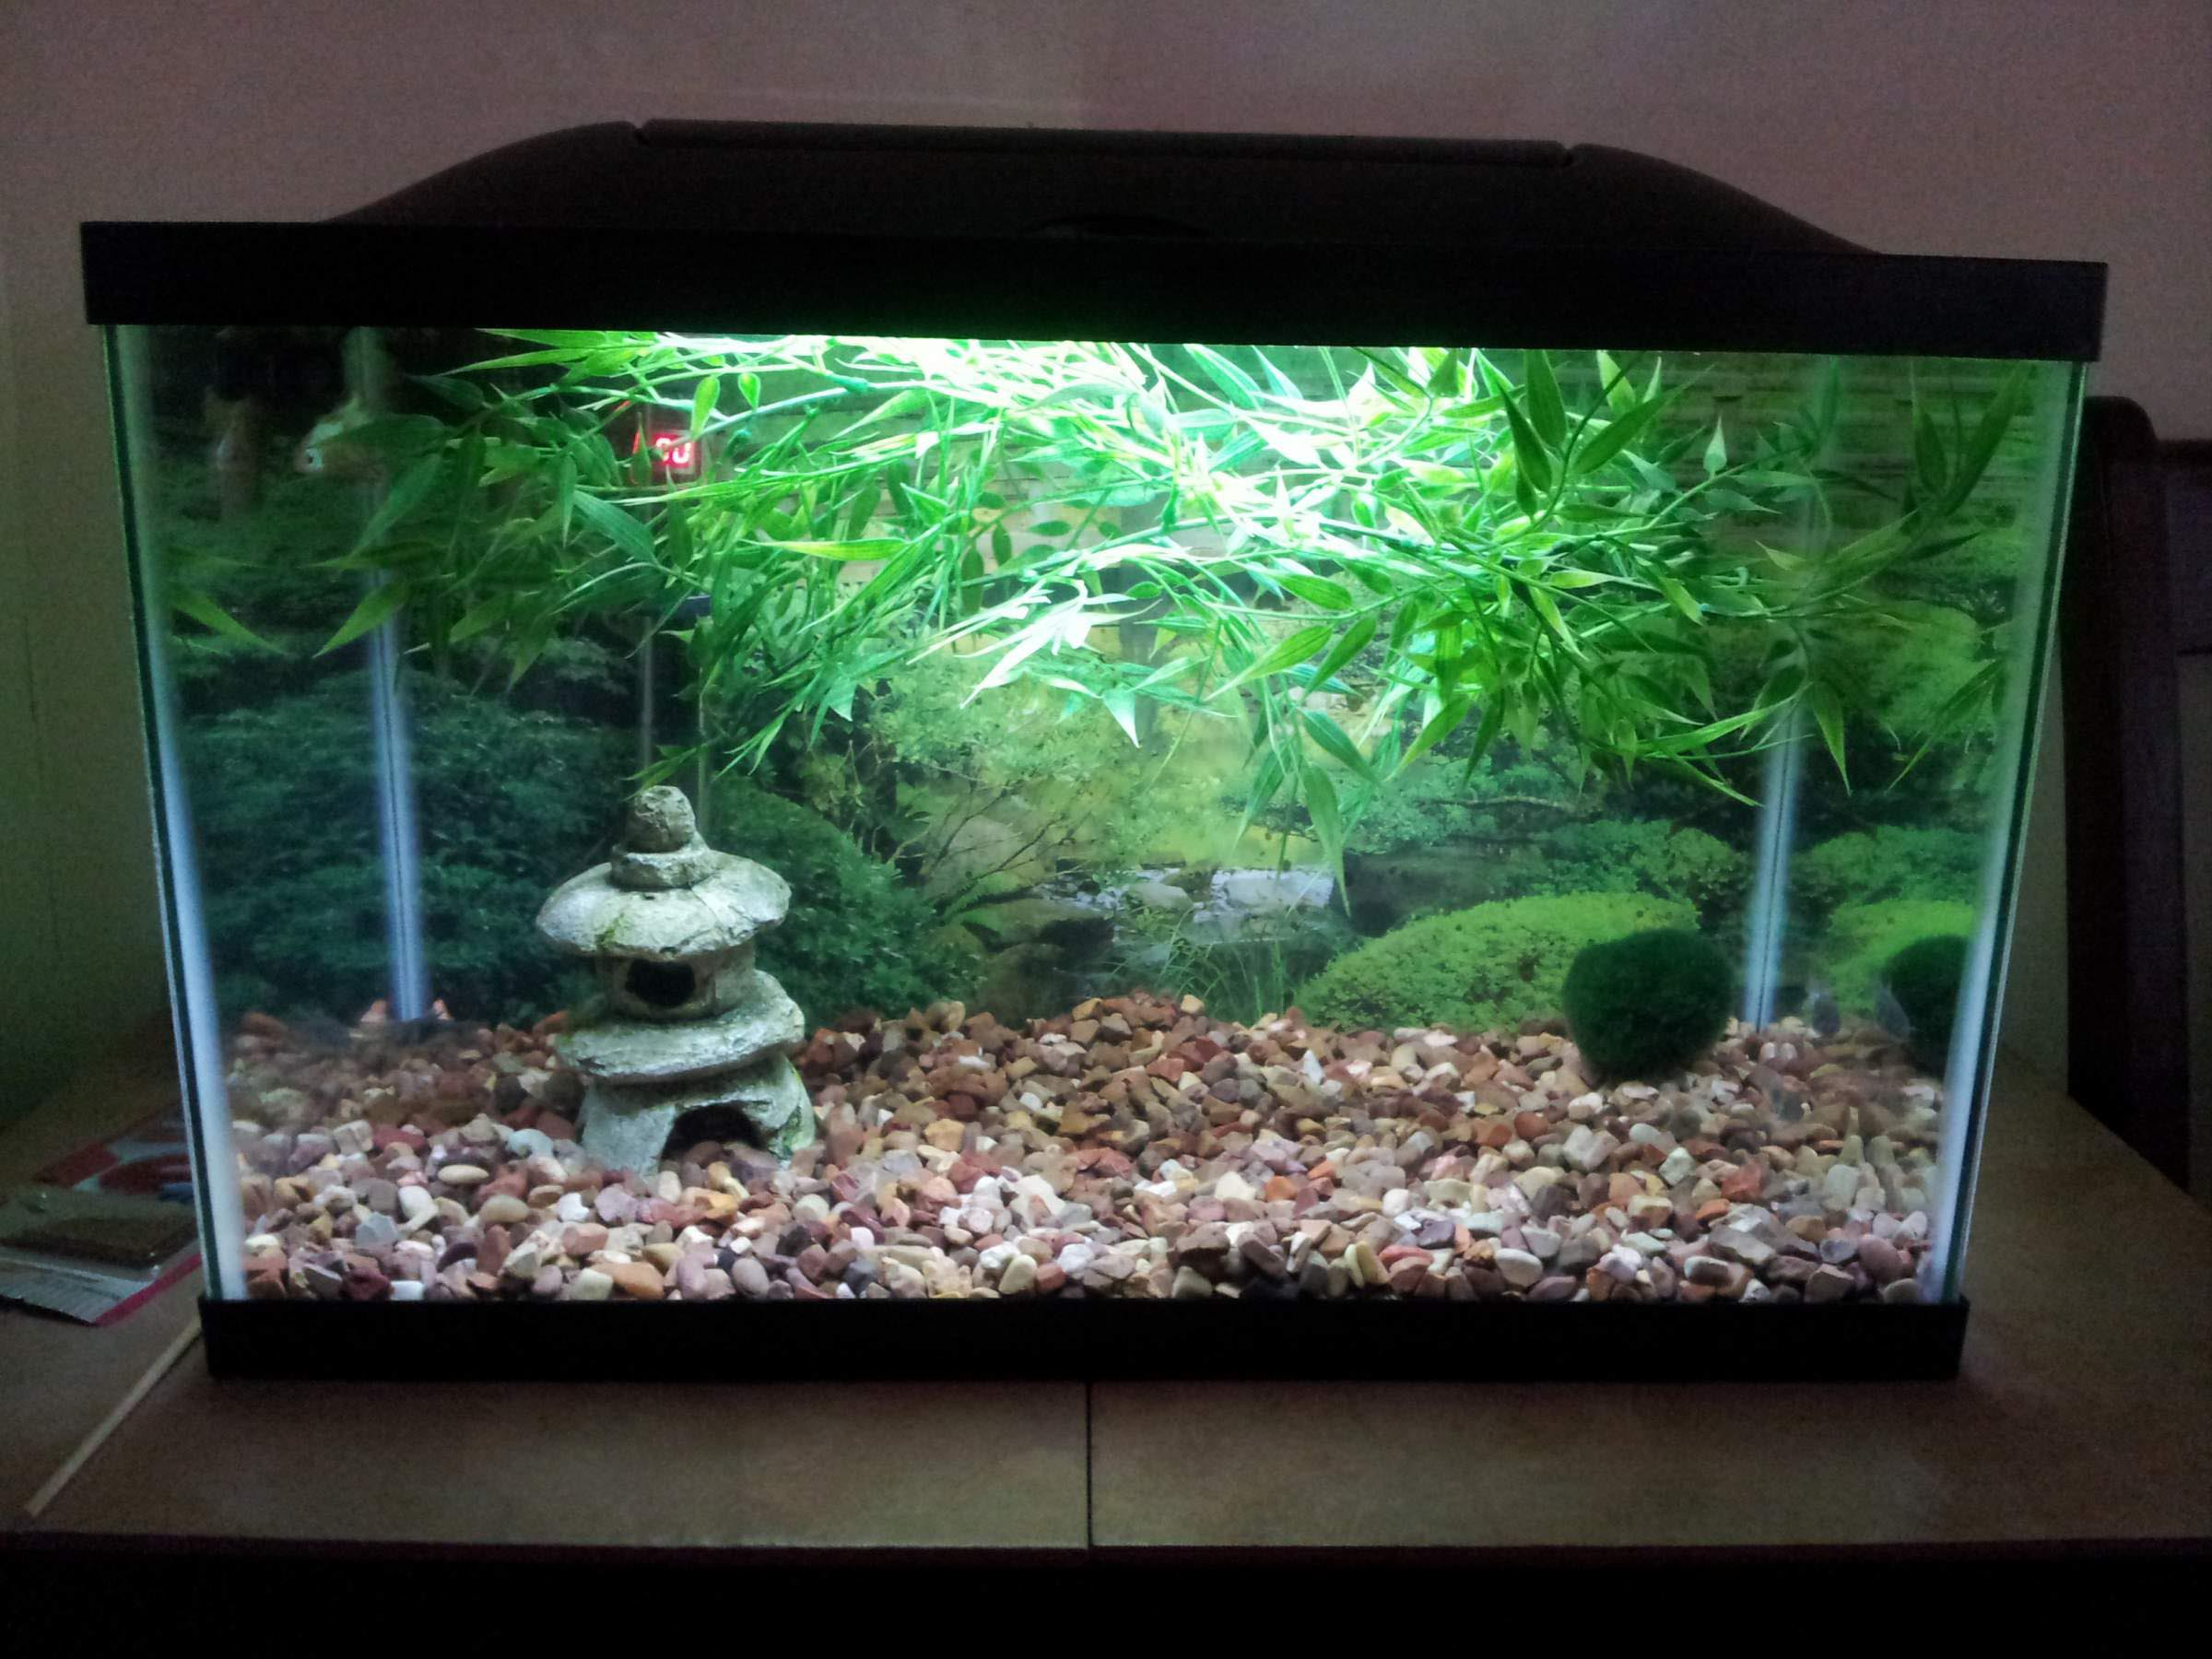 Fish aquarium decorations 28 images aquarium for Deco aquarium